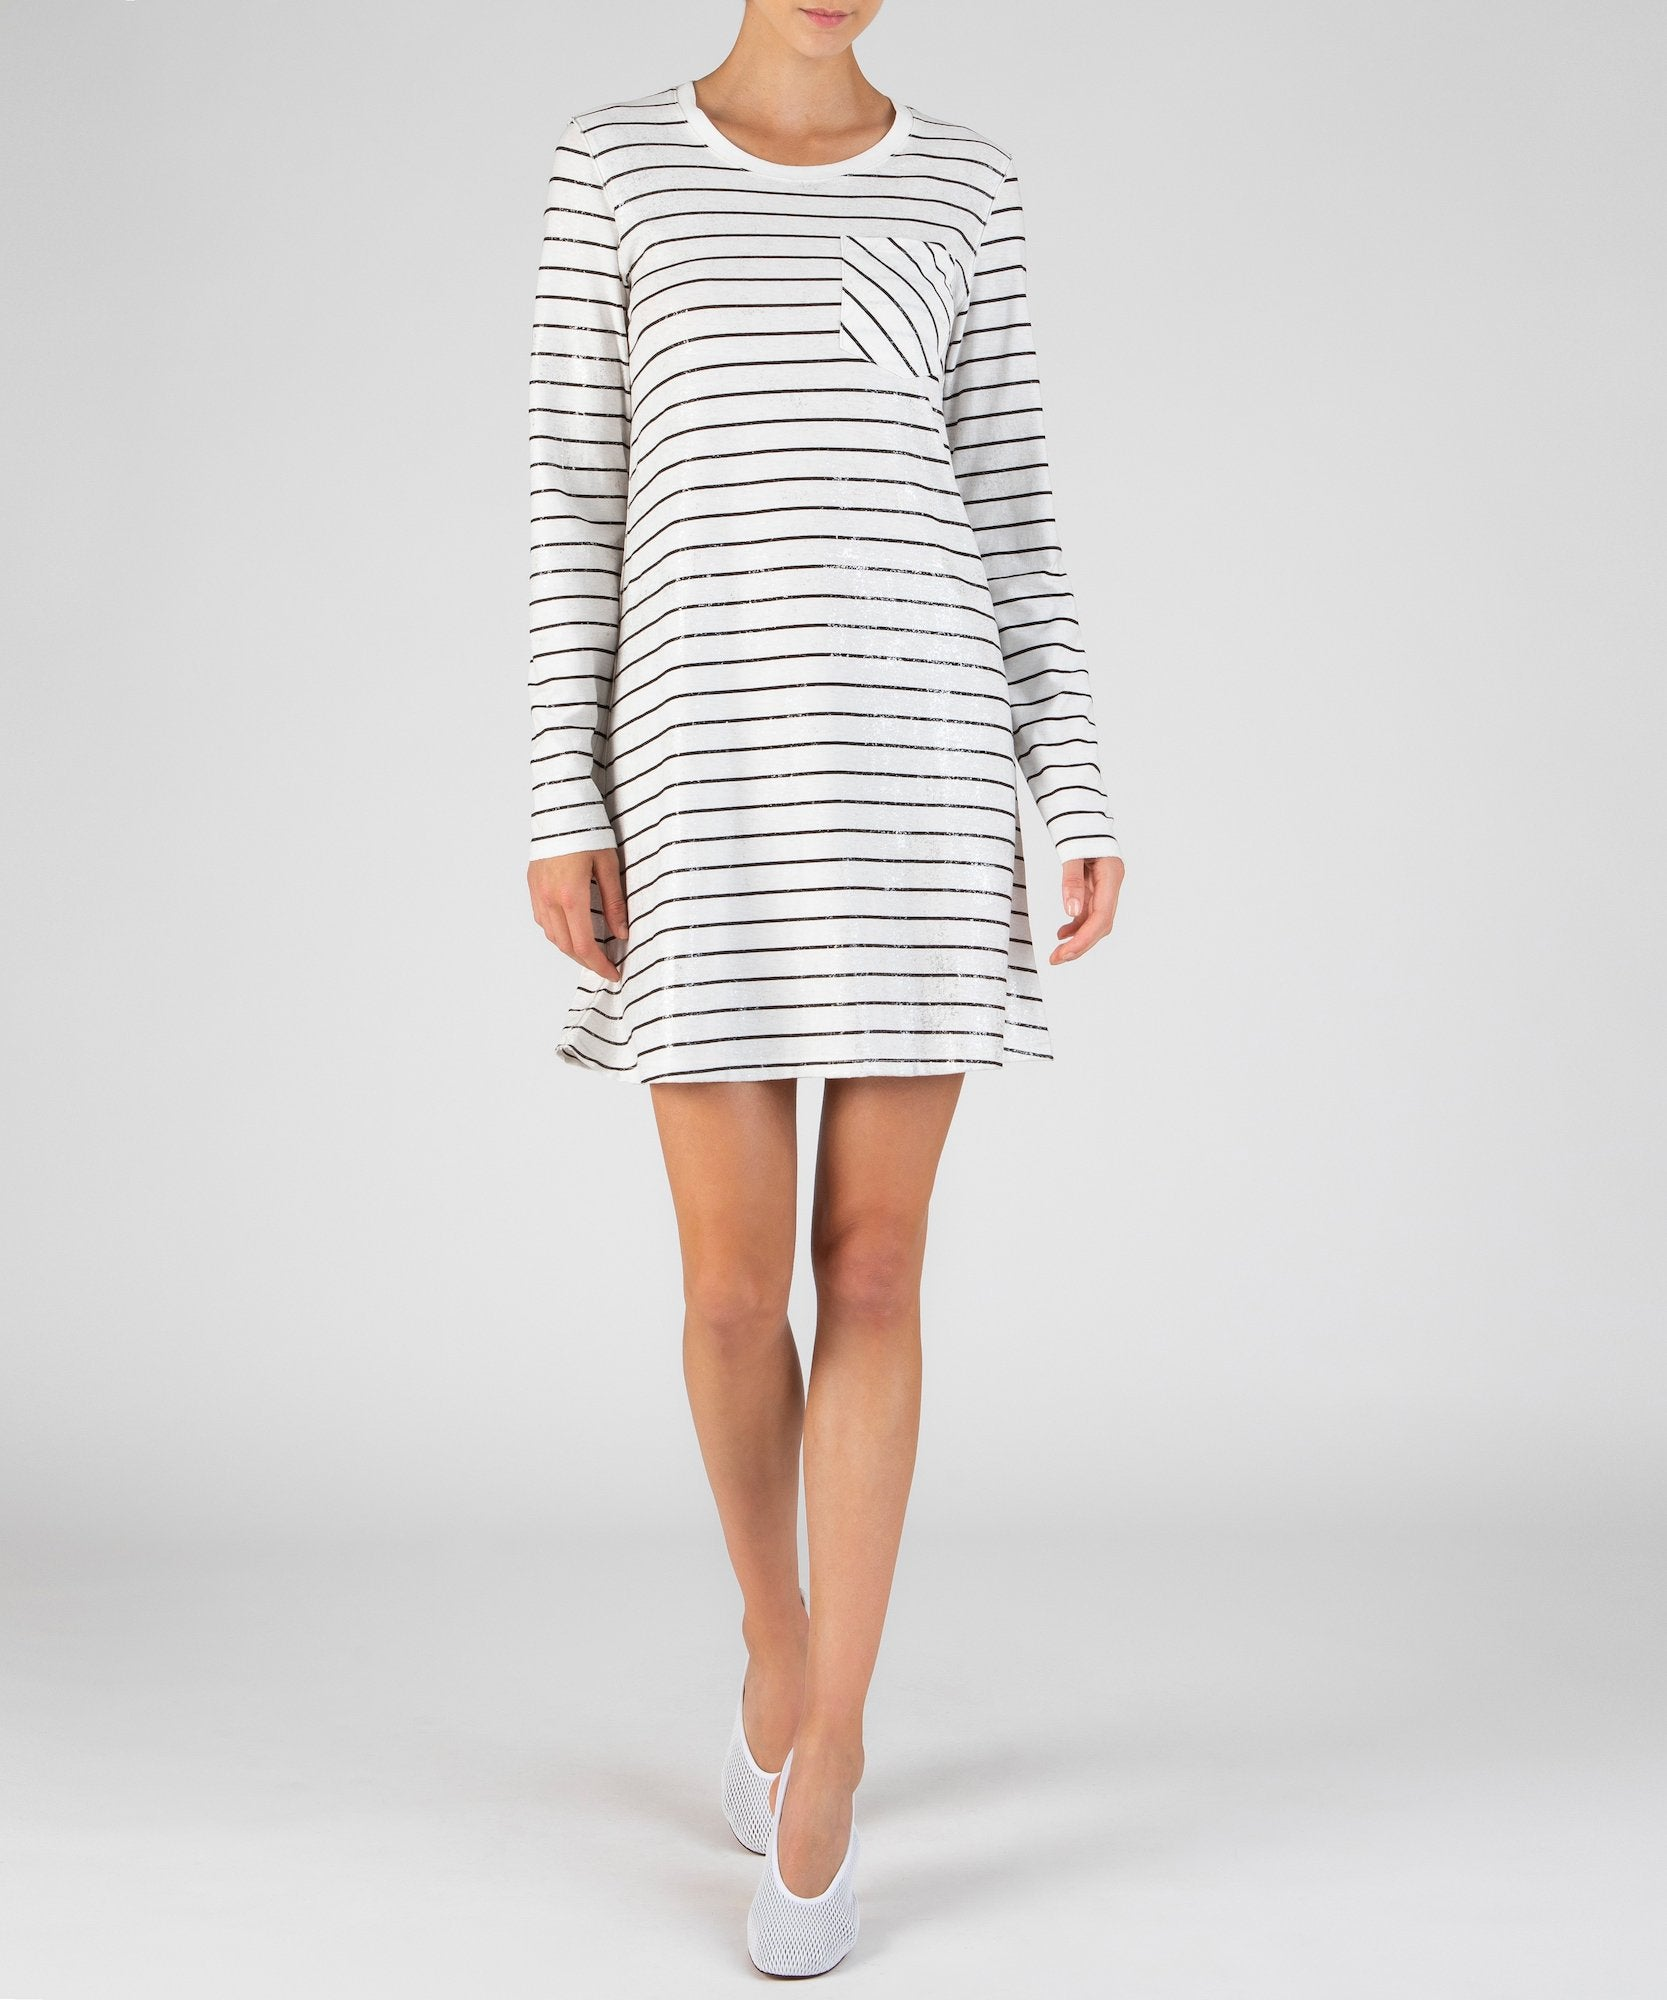 Chalk and Black Striped Sparkled Long Sleeve Dress - Women's Casual Dress by ATM Anthony Thomas Melillo